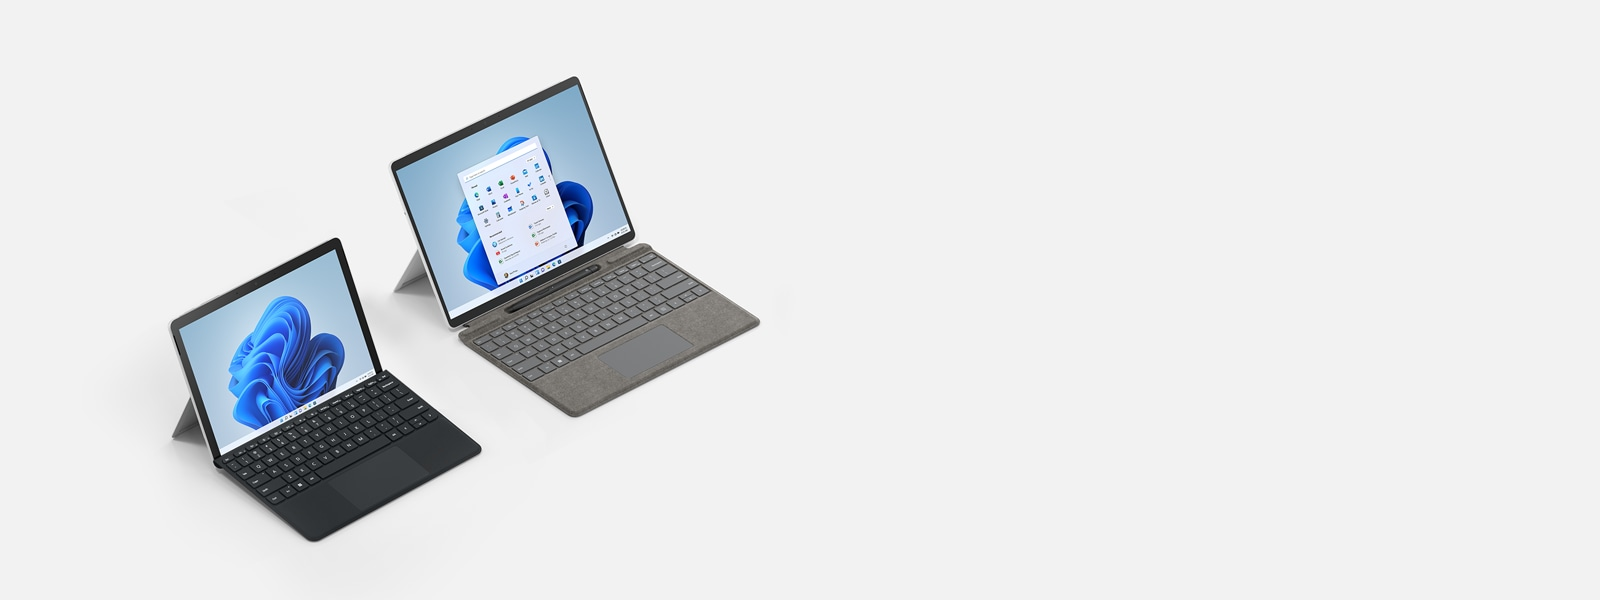 Surface Pro 8 と Surface Go 3